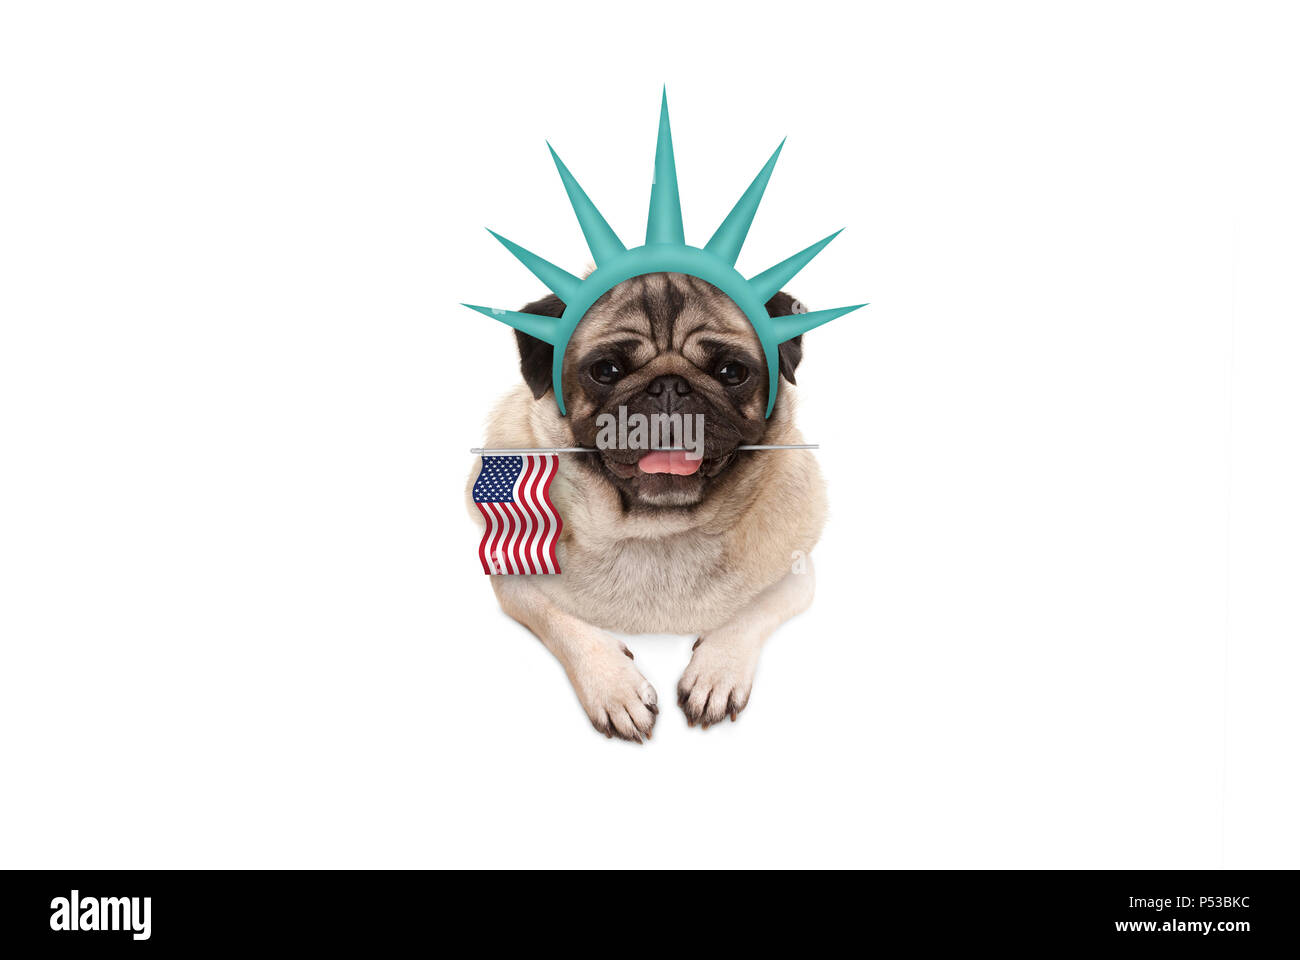 smiling pug puppy dog holding American flag, hanging on white banner, wearing lady Liberty crown, isolated Stock Photo